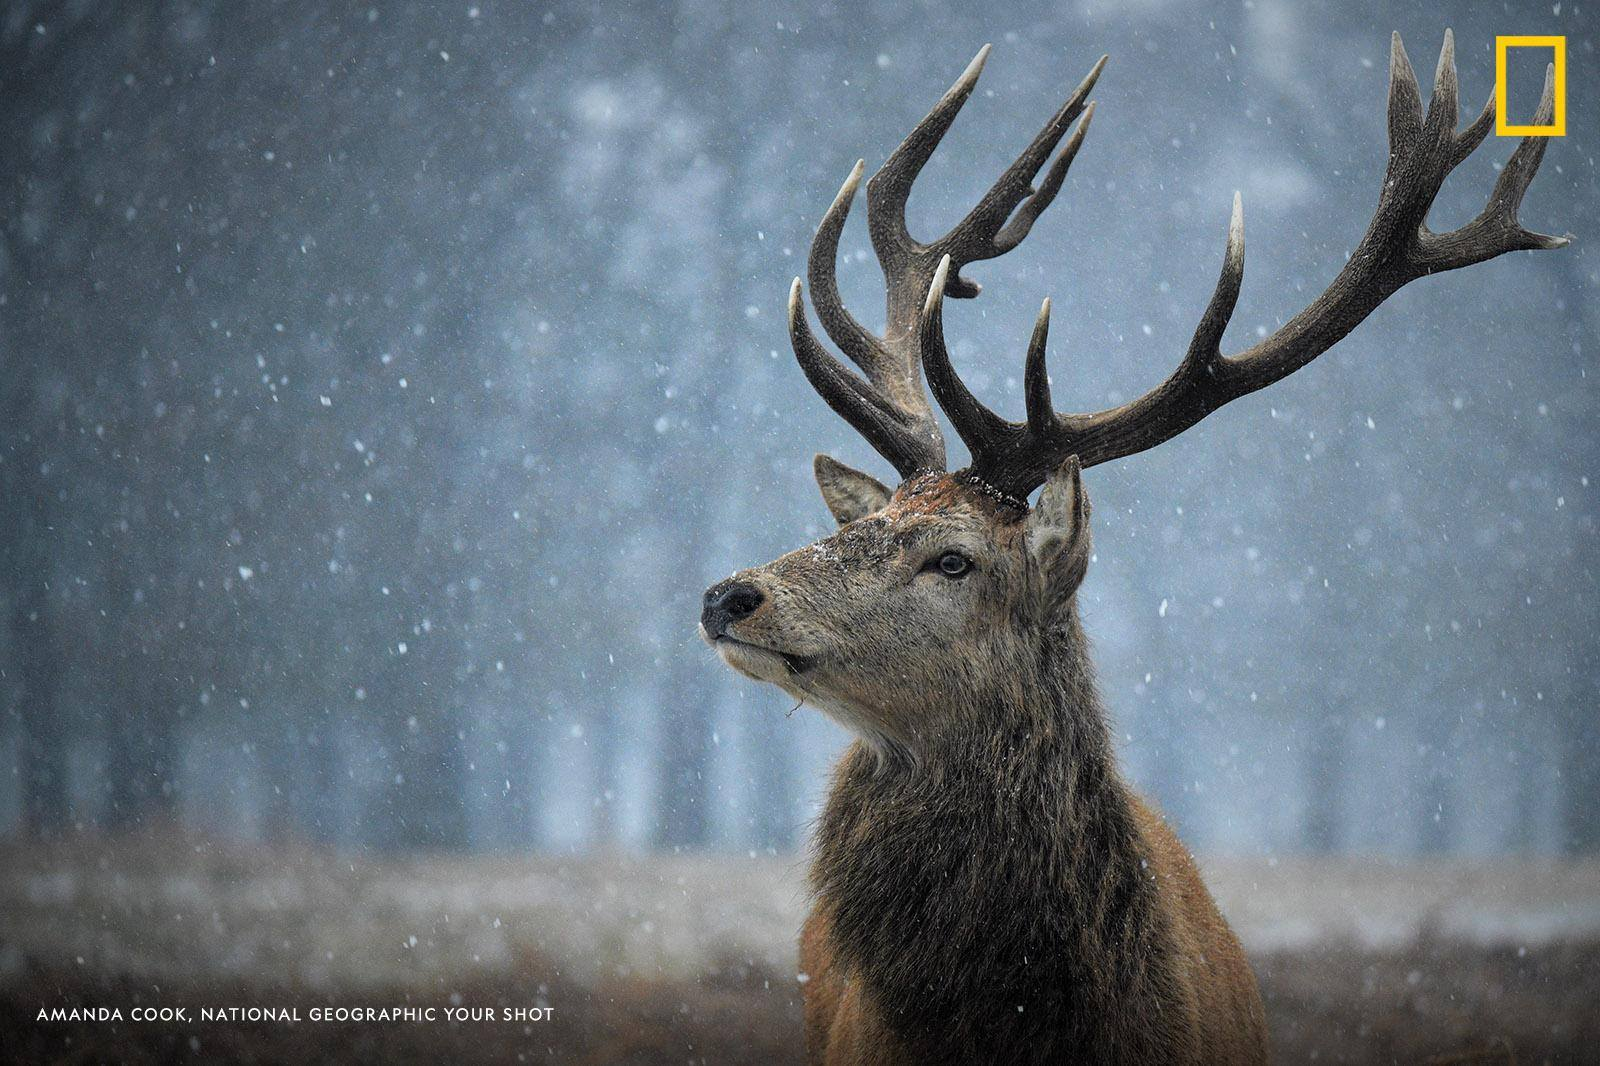 "A stag lifts his head in Bushy Park, London, to look at a nearby dog walker. ""[I was] incredibly lucky to catch this stag looking majestic in the snow,"" Your Shot photographer Amanda Cook writes. https://on.natgeo.com/2EG8BT2"